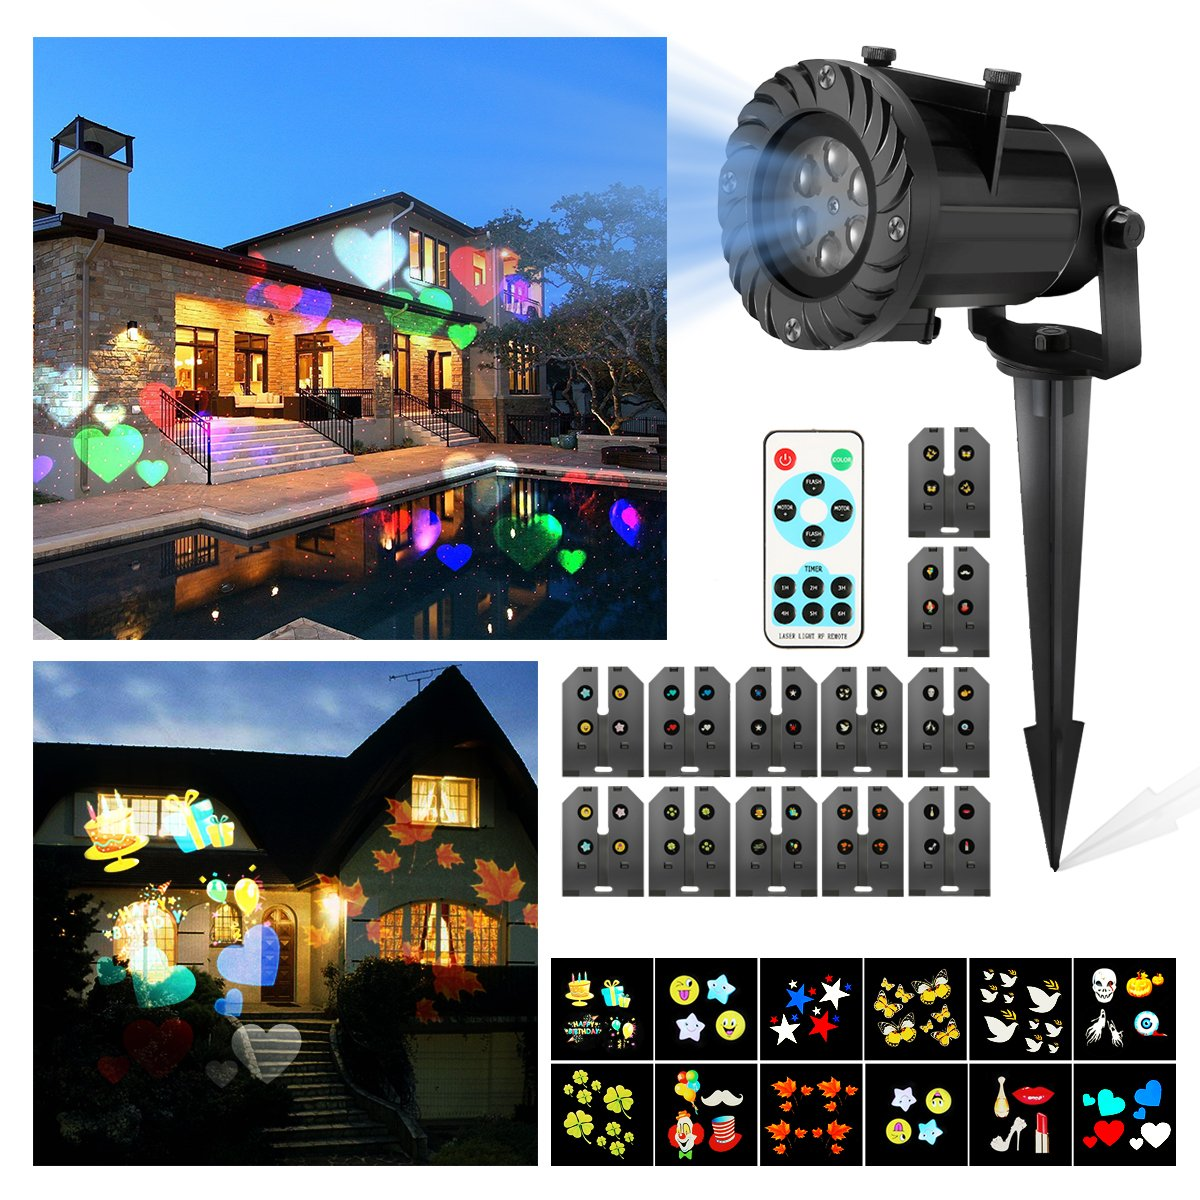 Christmas Projector Lights, JELEGANT LED Landscape Lights Projector Spotlights with Remote Control Waterproof Decoration Lighting with 12pcs Switchable Pattern Show for Halloween Holiday Party by JELEGANT (Image #2)